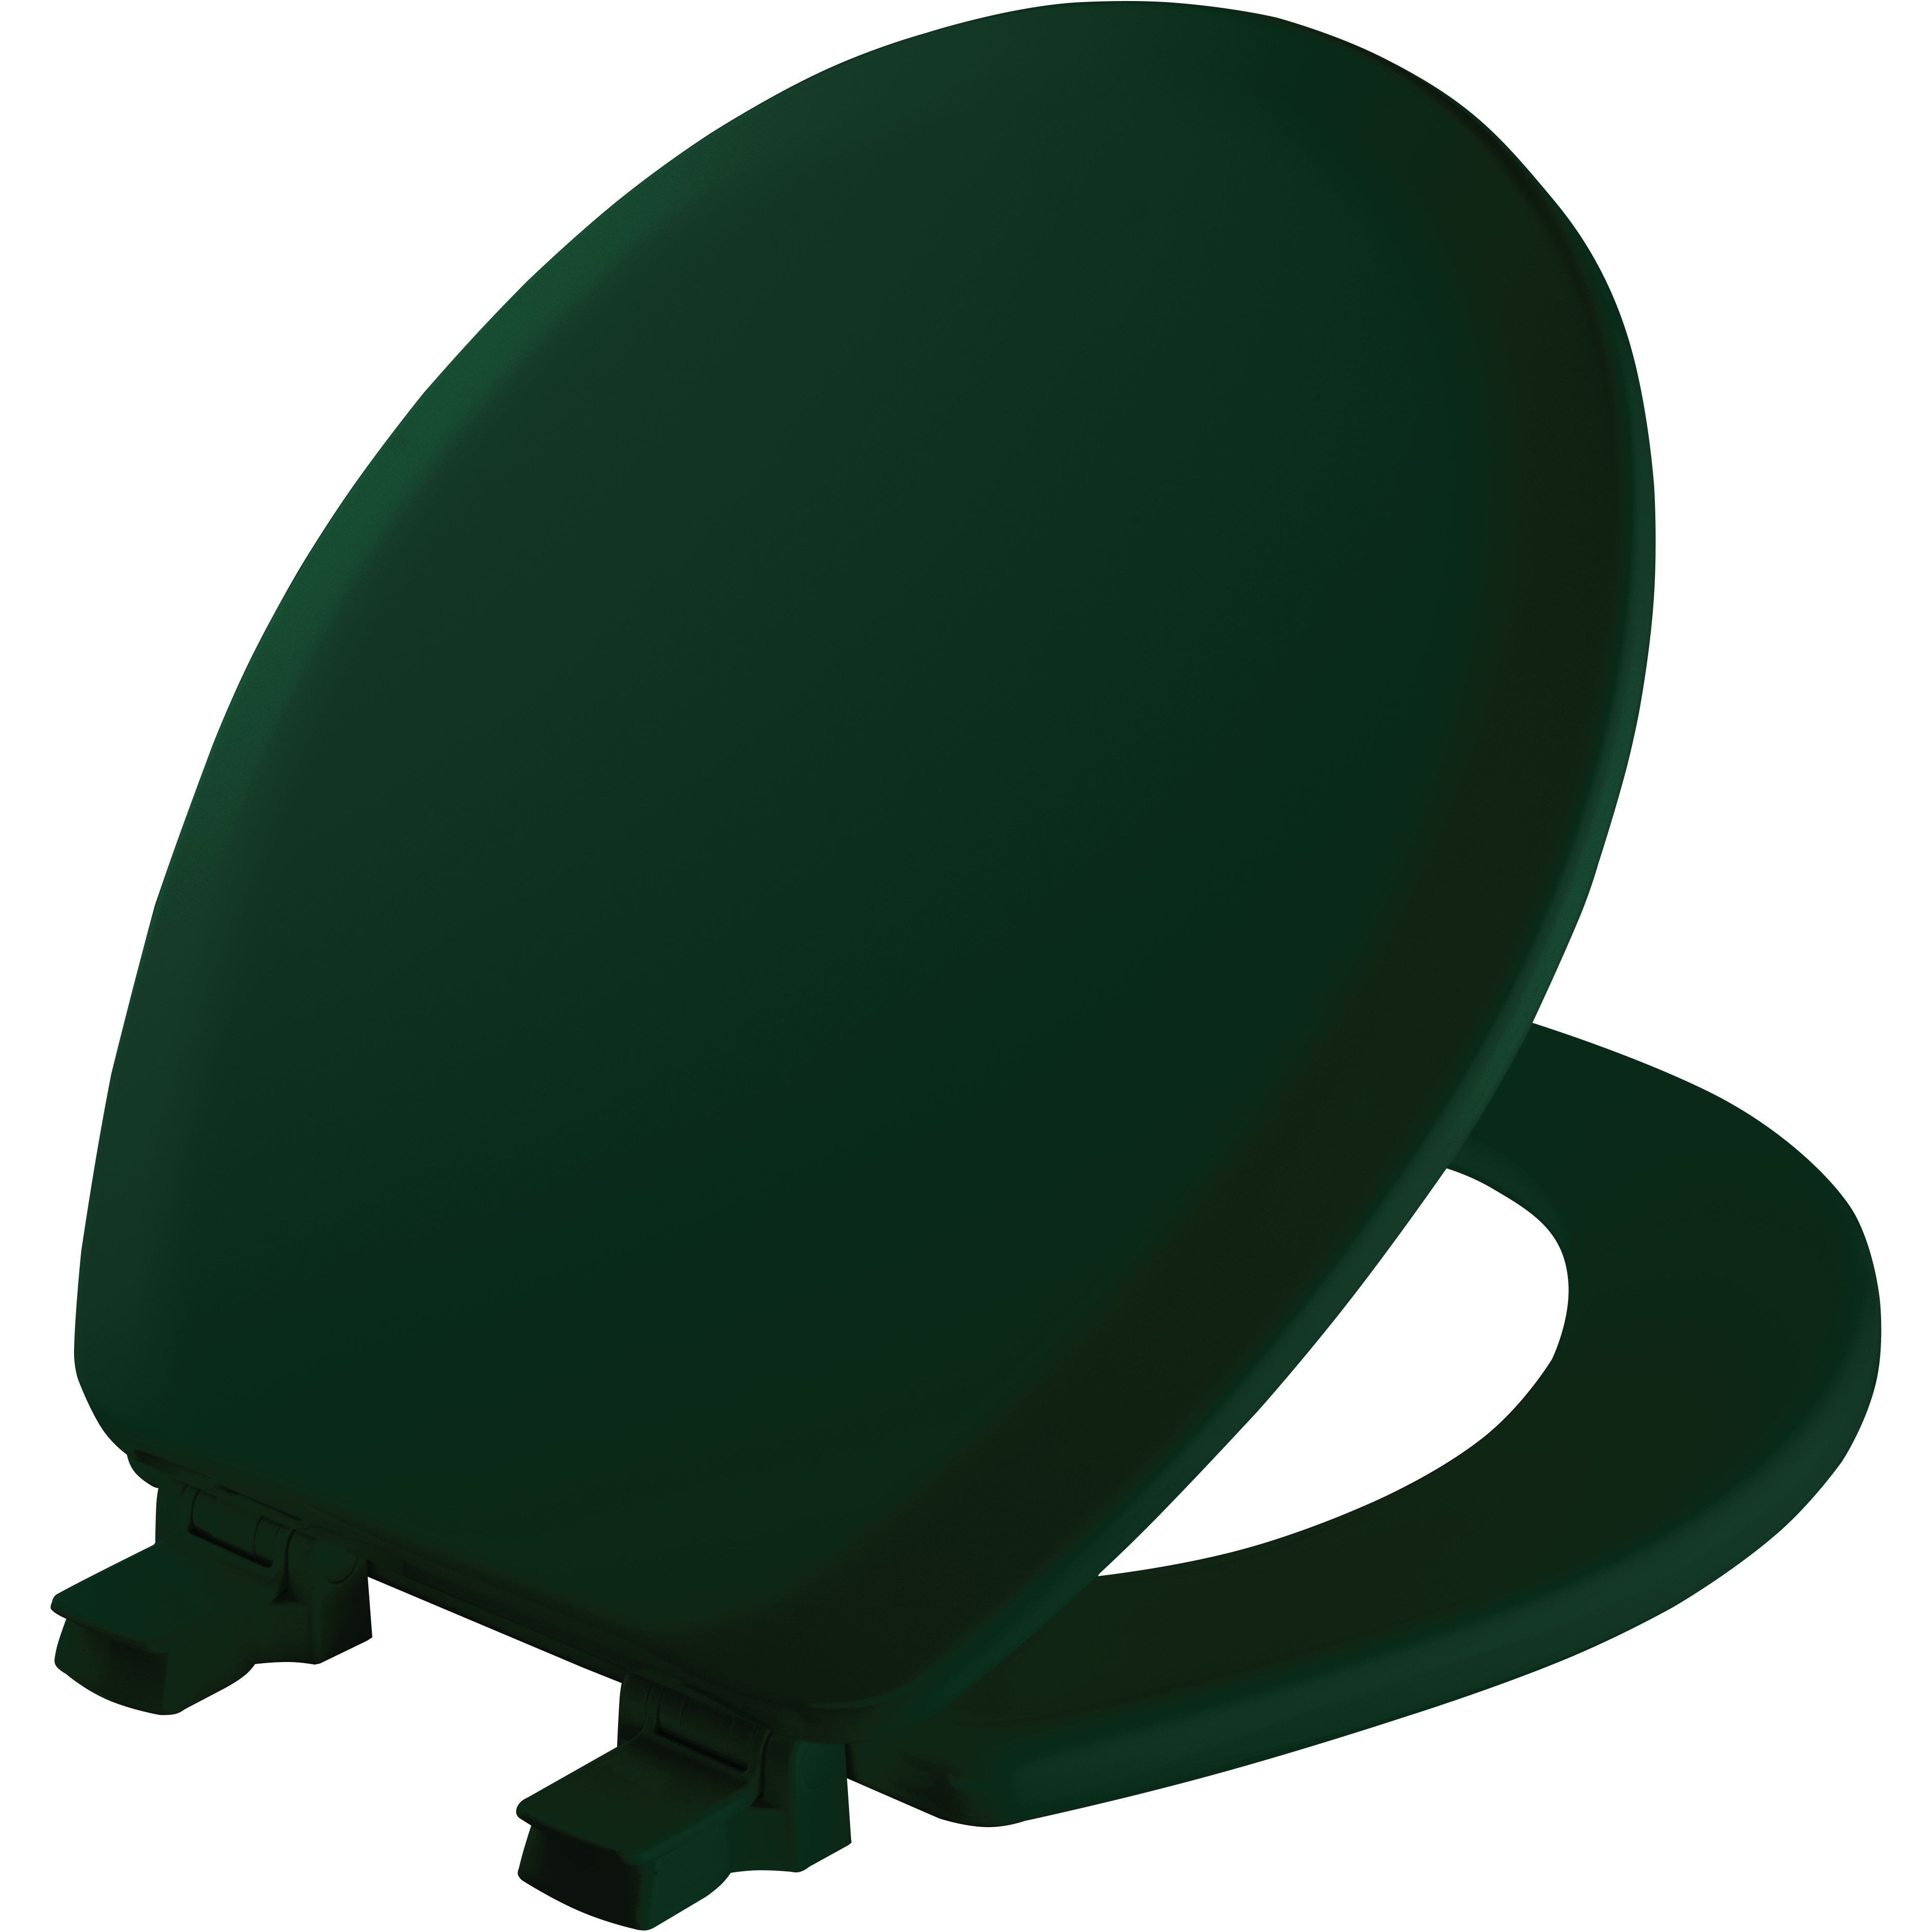 Mayfair Easy•Clean Round Enameled Wood Toilet Seat in Rain Forest with STA-TITE